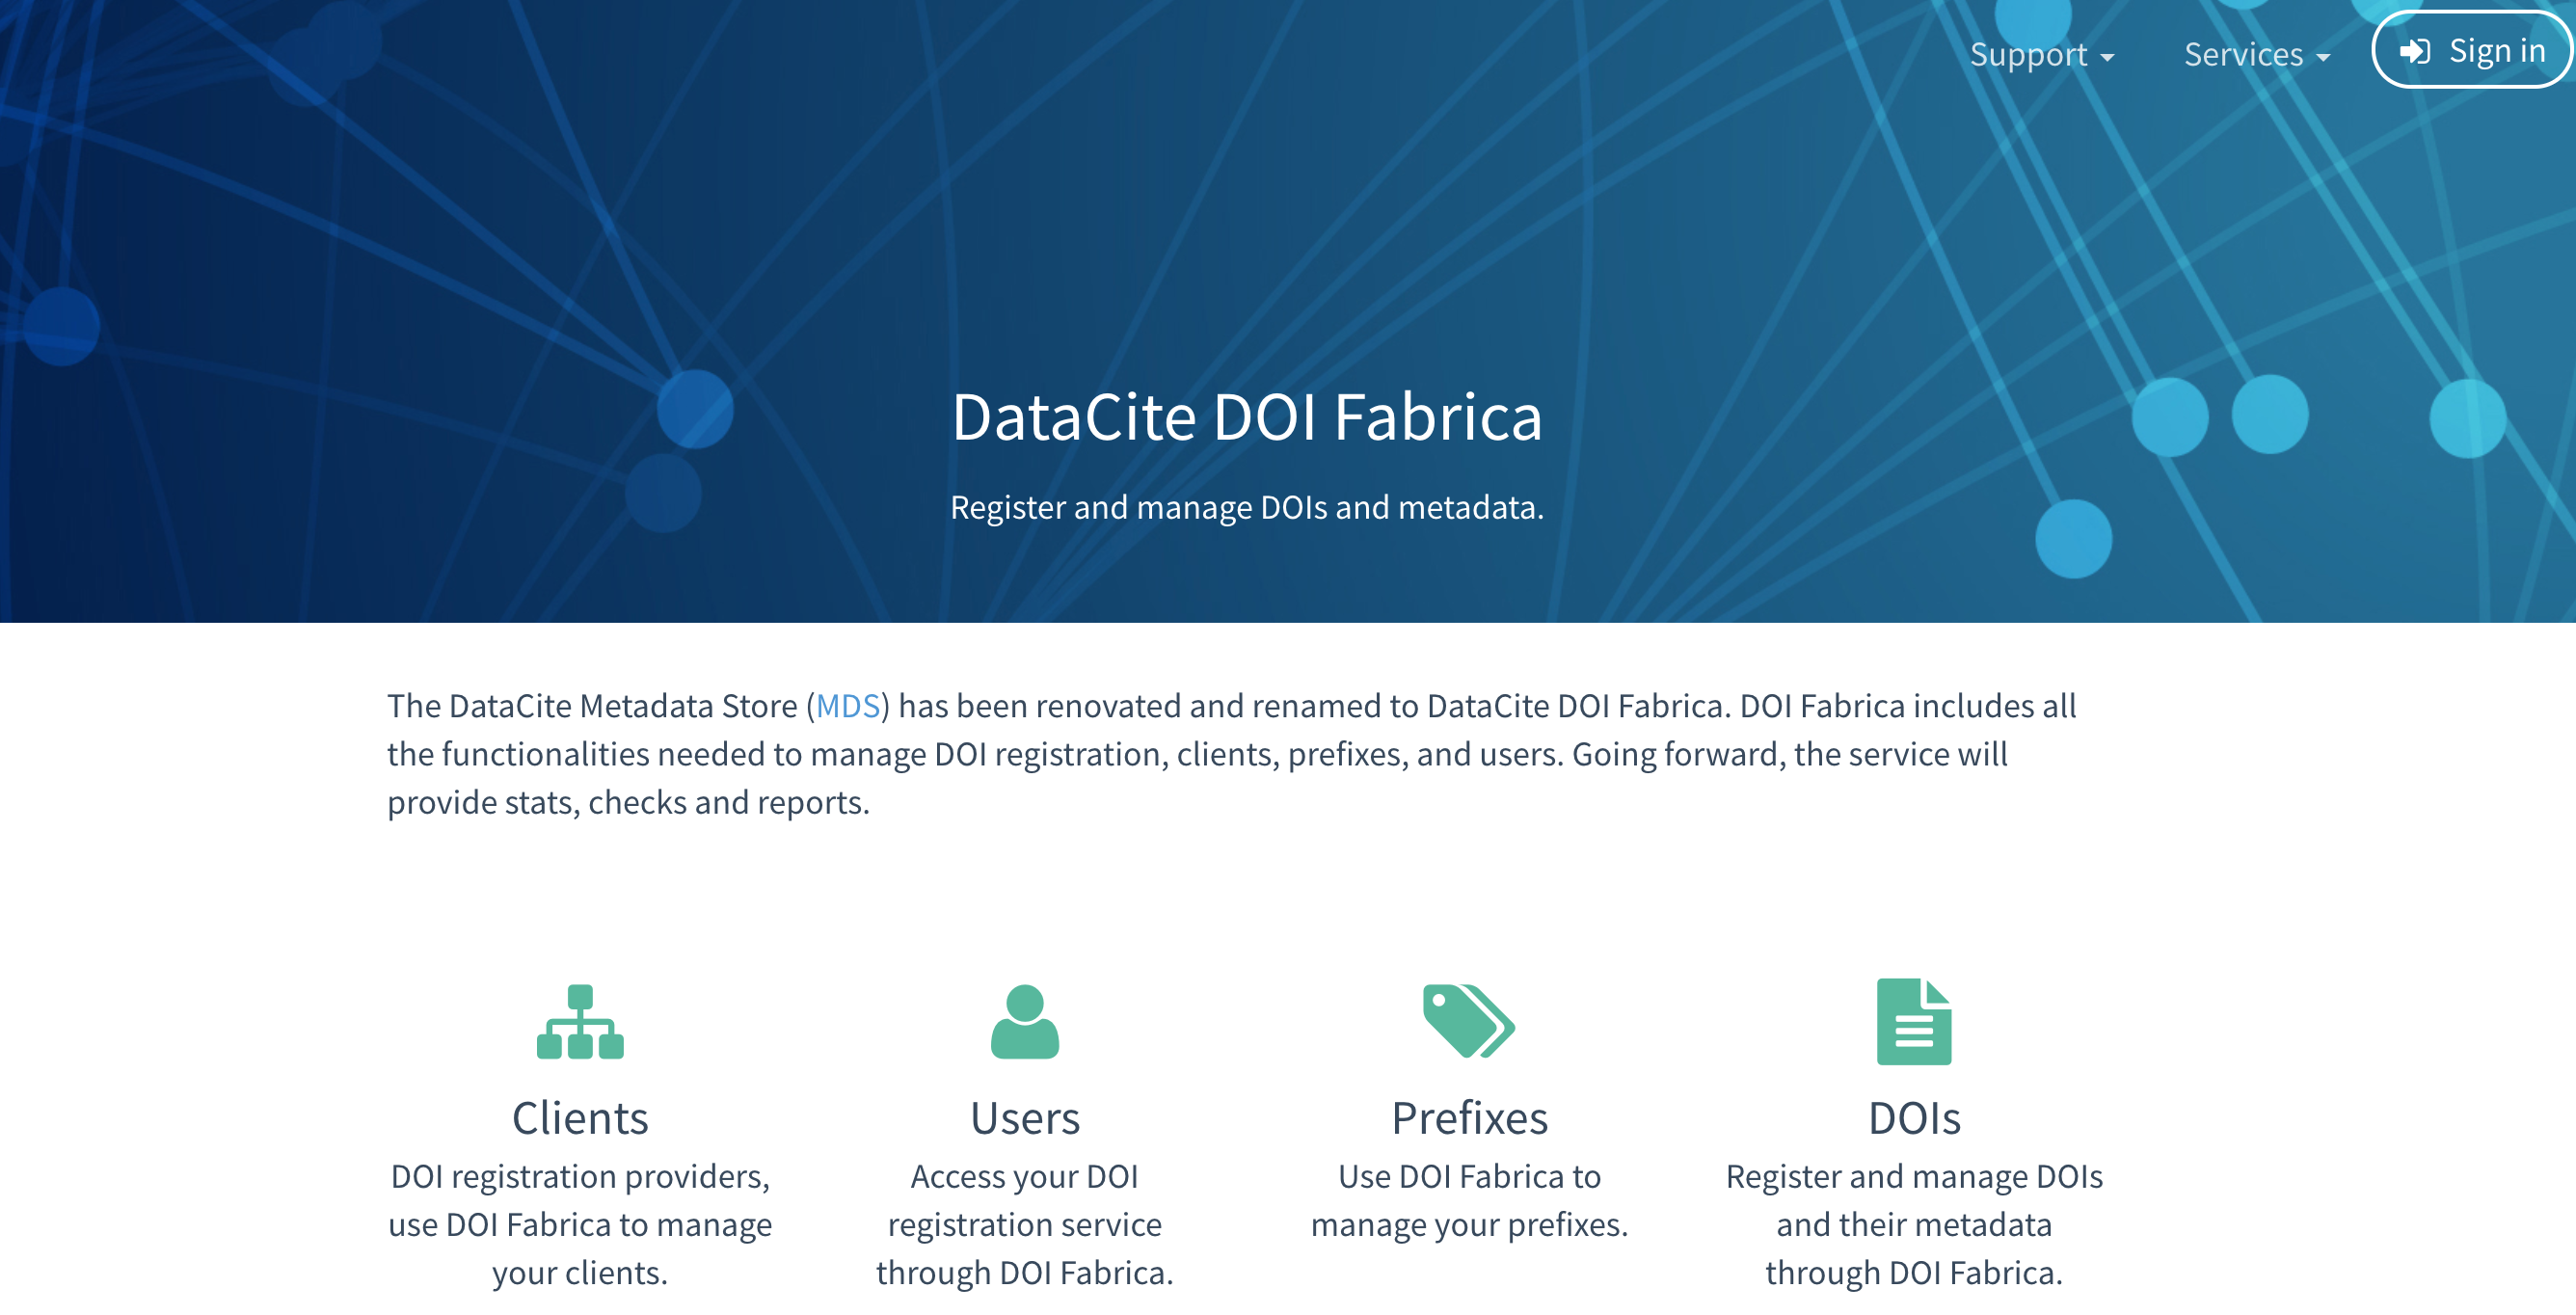 DataCite DOI Fabrica homepage: https://doi.datacite.org/